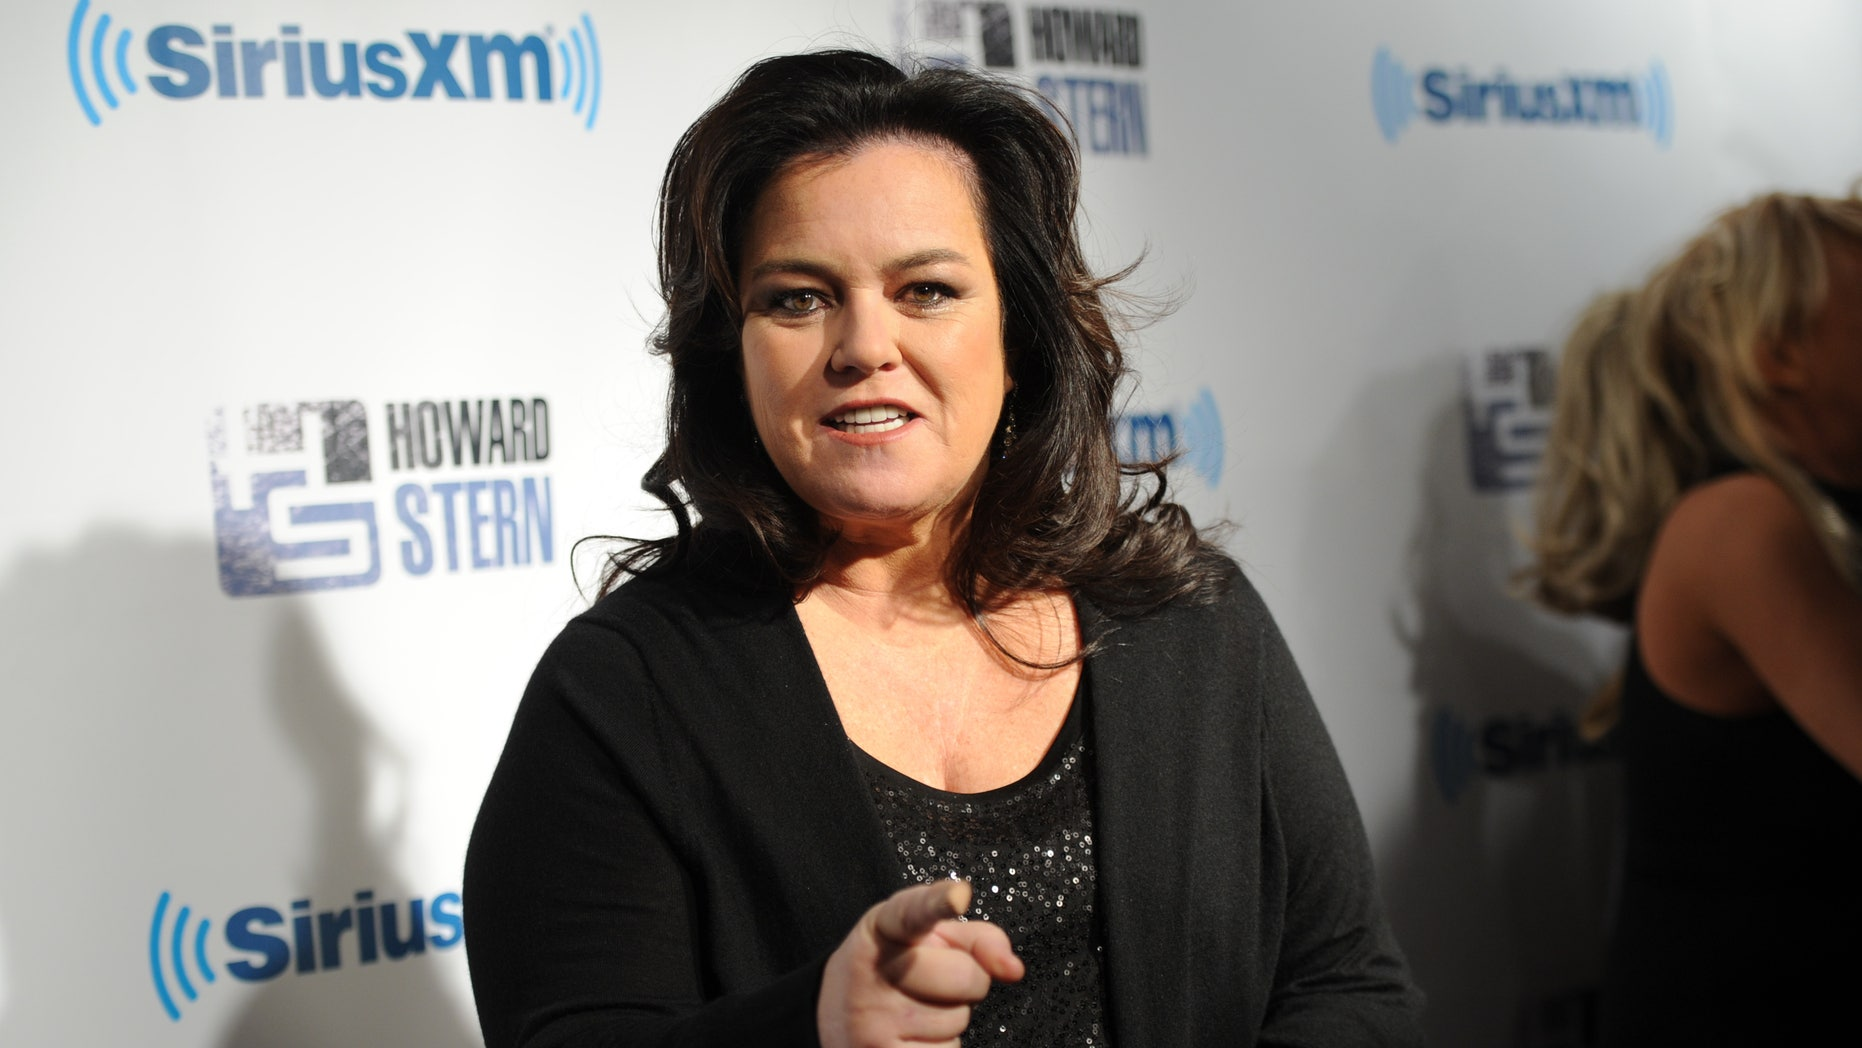 """January 31, 2014. Rosie O'Donnell attends """"Howard Stern's Birthday Bash,"""" at the Hammerstein Ballroom in New York."""